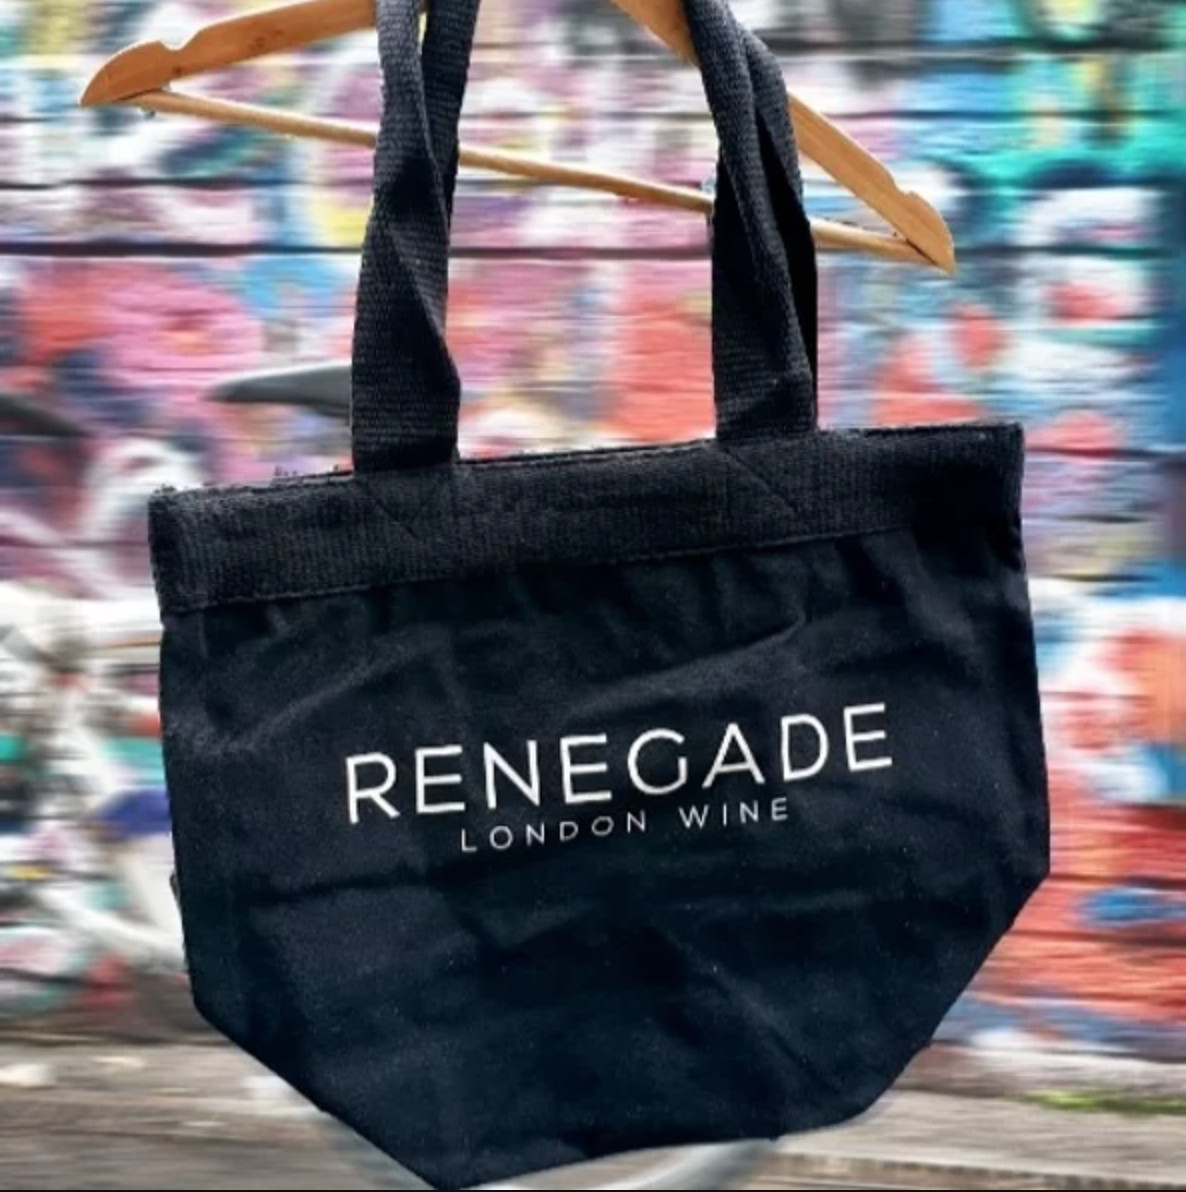 The best London restaurant merch to buy right now includes this grey tote bag from Renegade Urban Winery